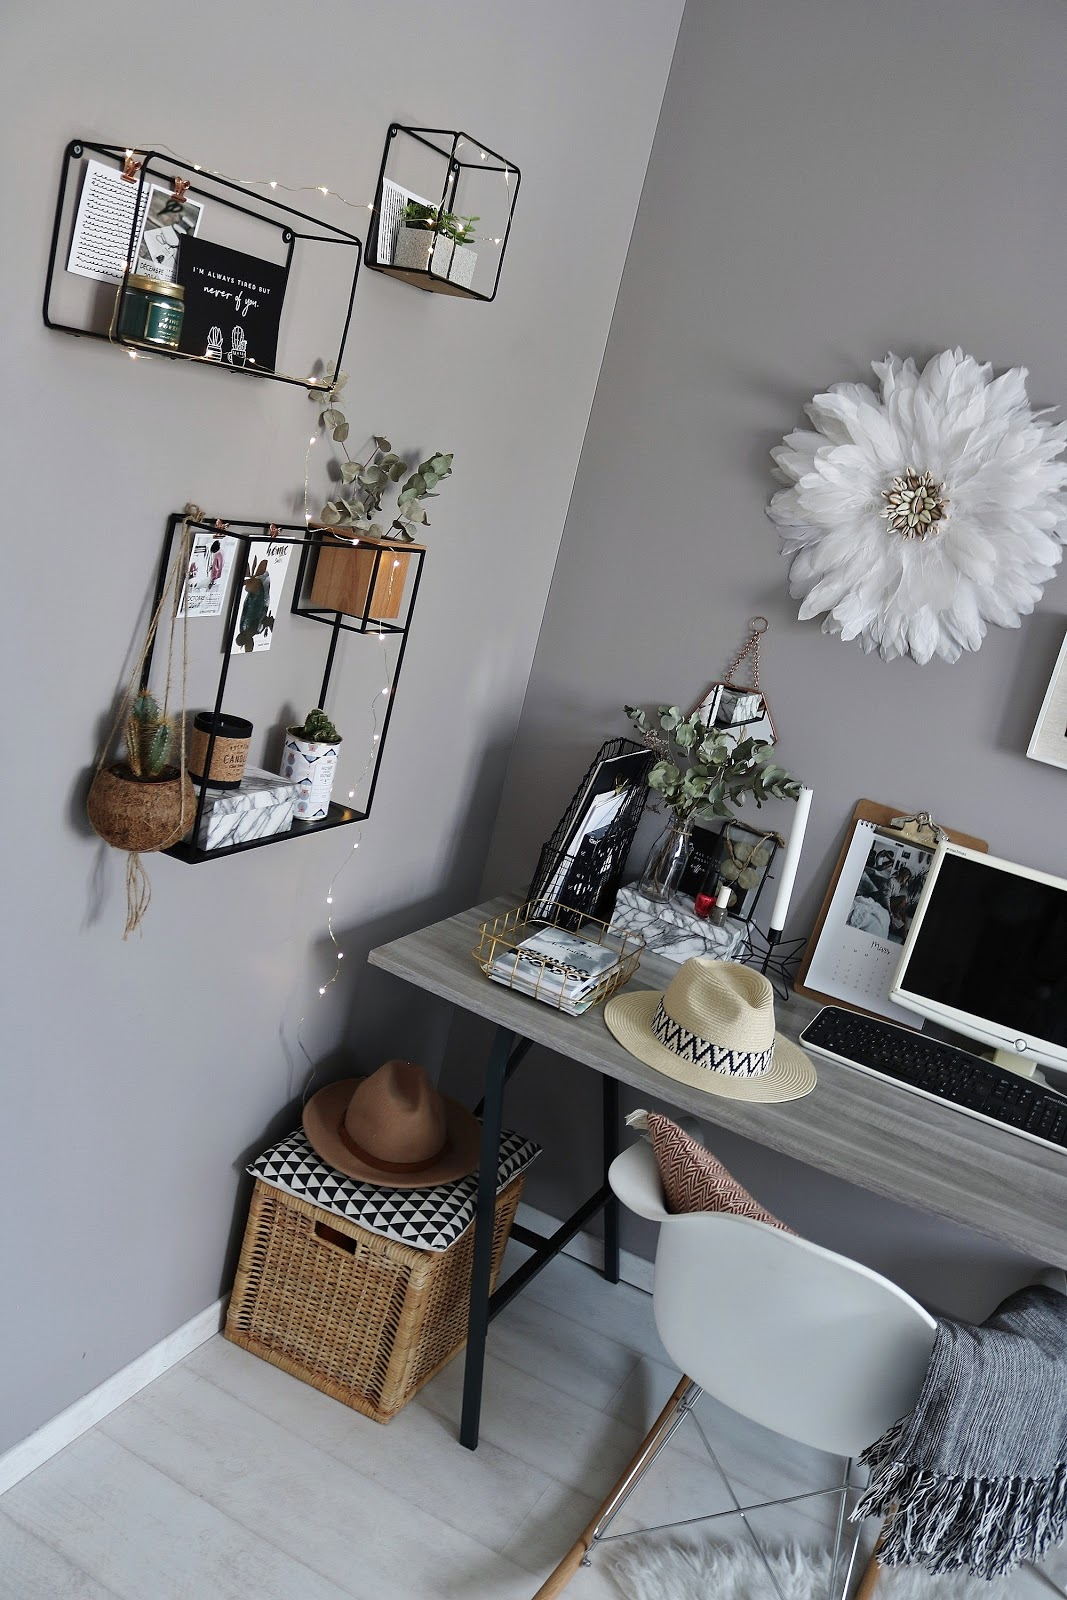 pauline-dress-blog-mode-deco-lifestyle-decoration-interior-french-france-doubs-besancon-fille-blogueuse-blogger-blogeuse-bloggeuse-inspiration-action-fer-bois-boheme-tendance-nature-tropical-fer-etagere-haul-2018